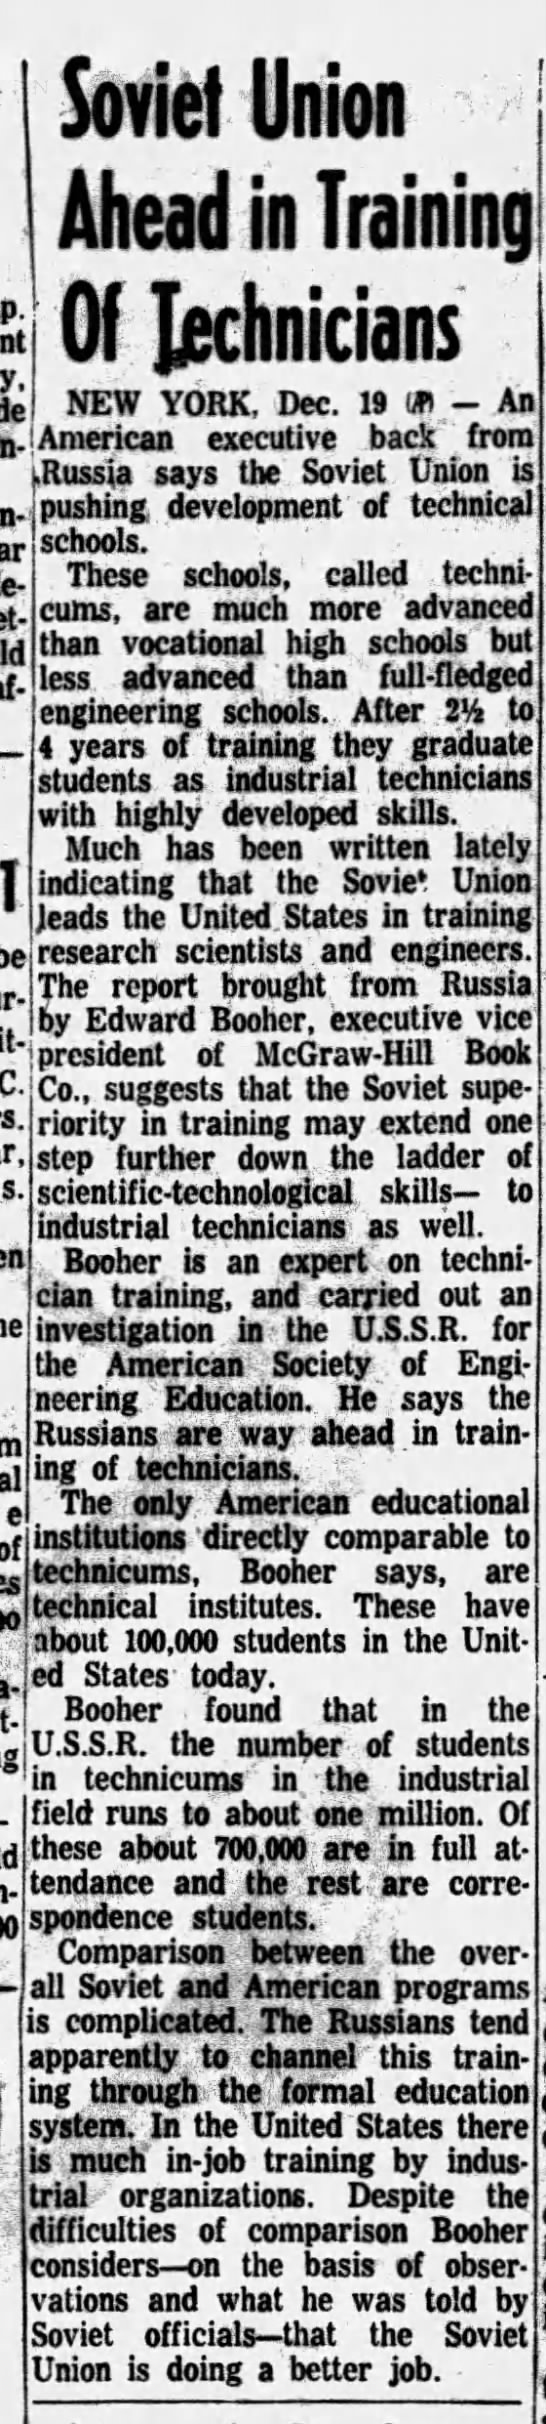 Soviet Union Ahead in Training Technicians -